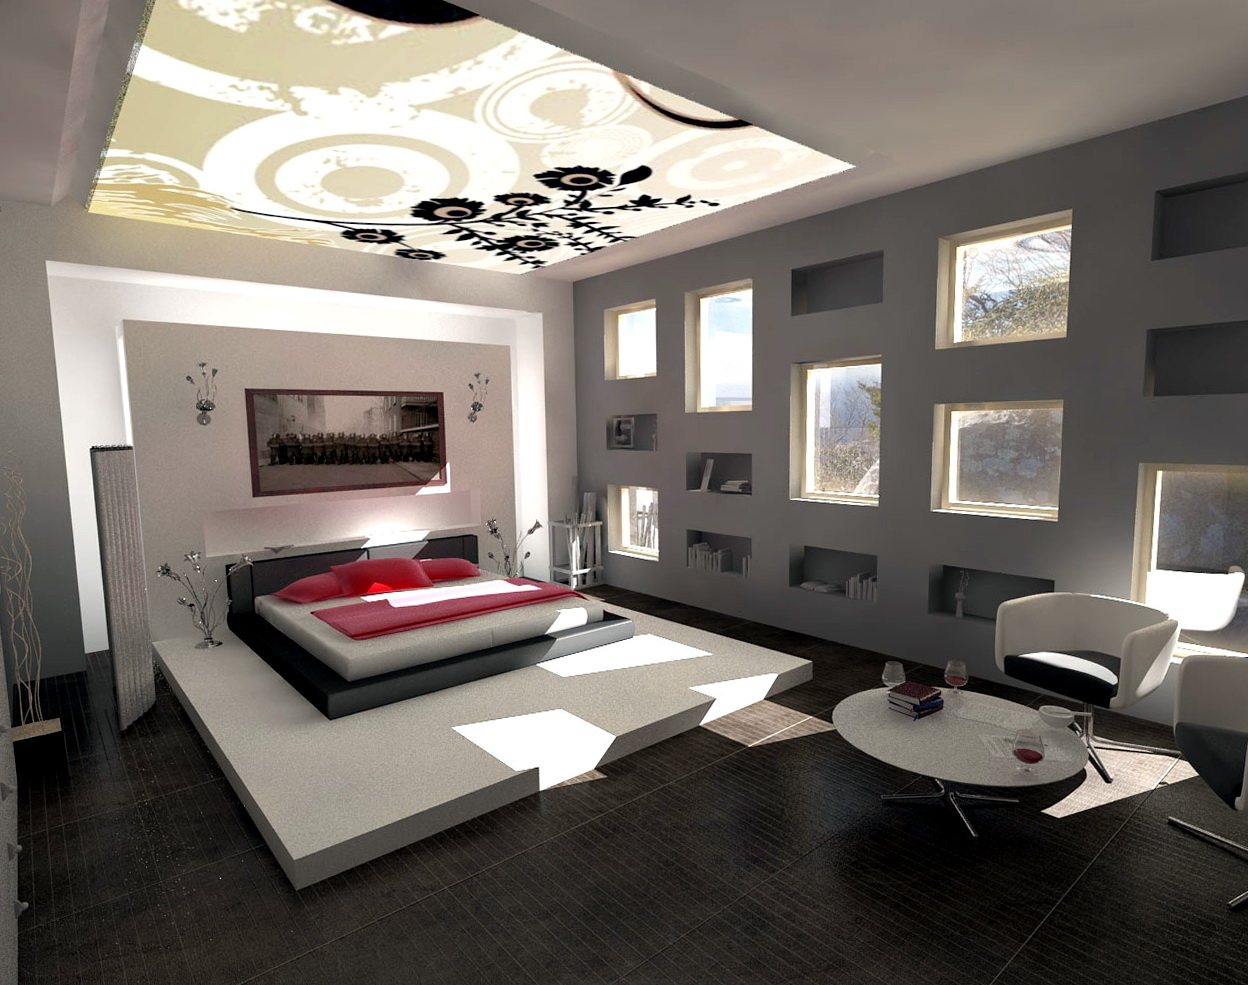 Bedroom Paint Ideas 2014